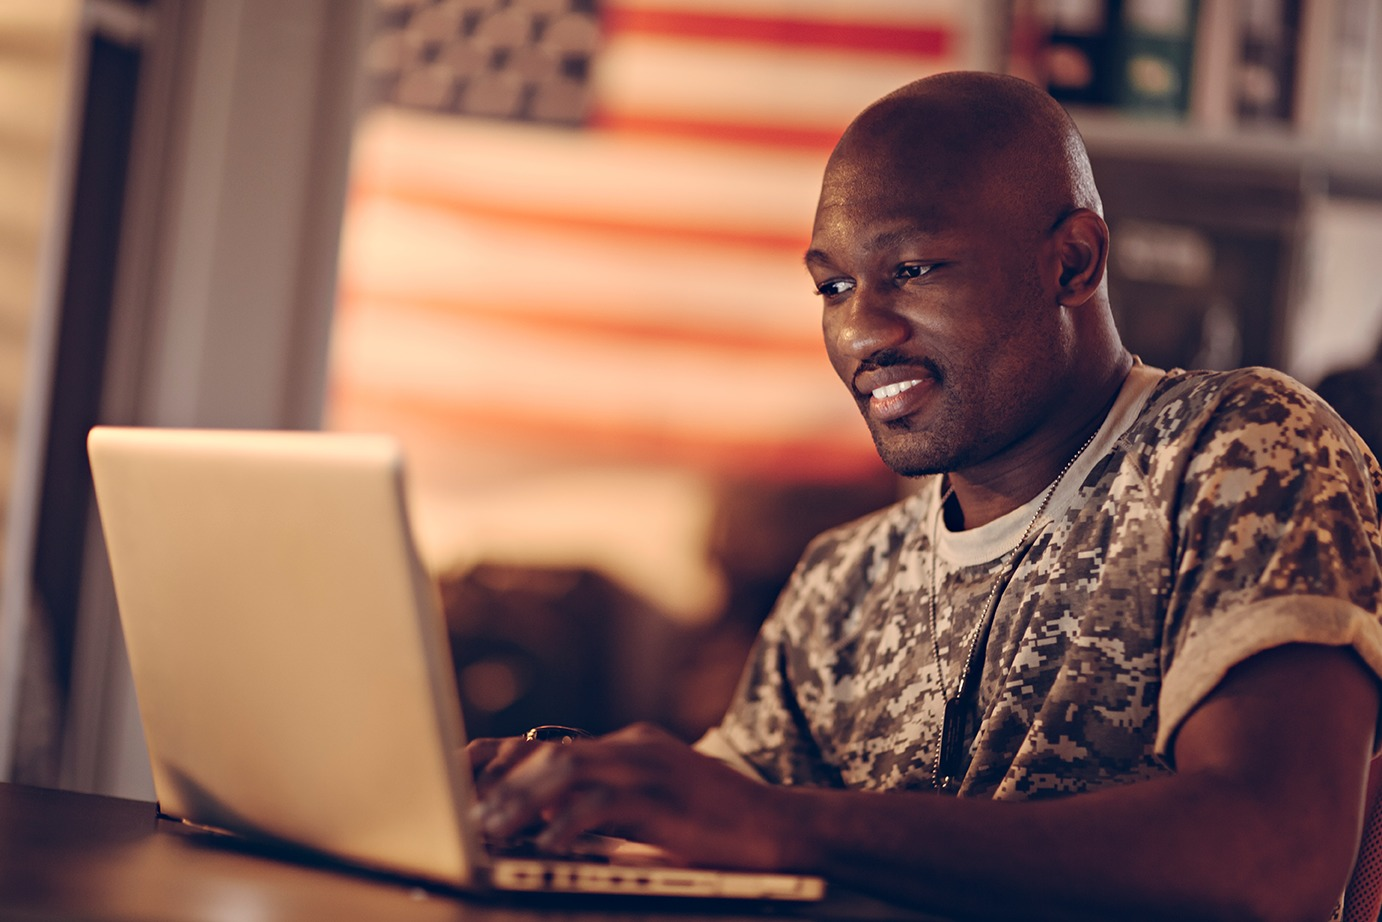 Serviceman wearing camo shirt and dog tags, working on laptop, American flag in the background